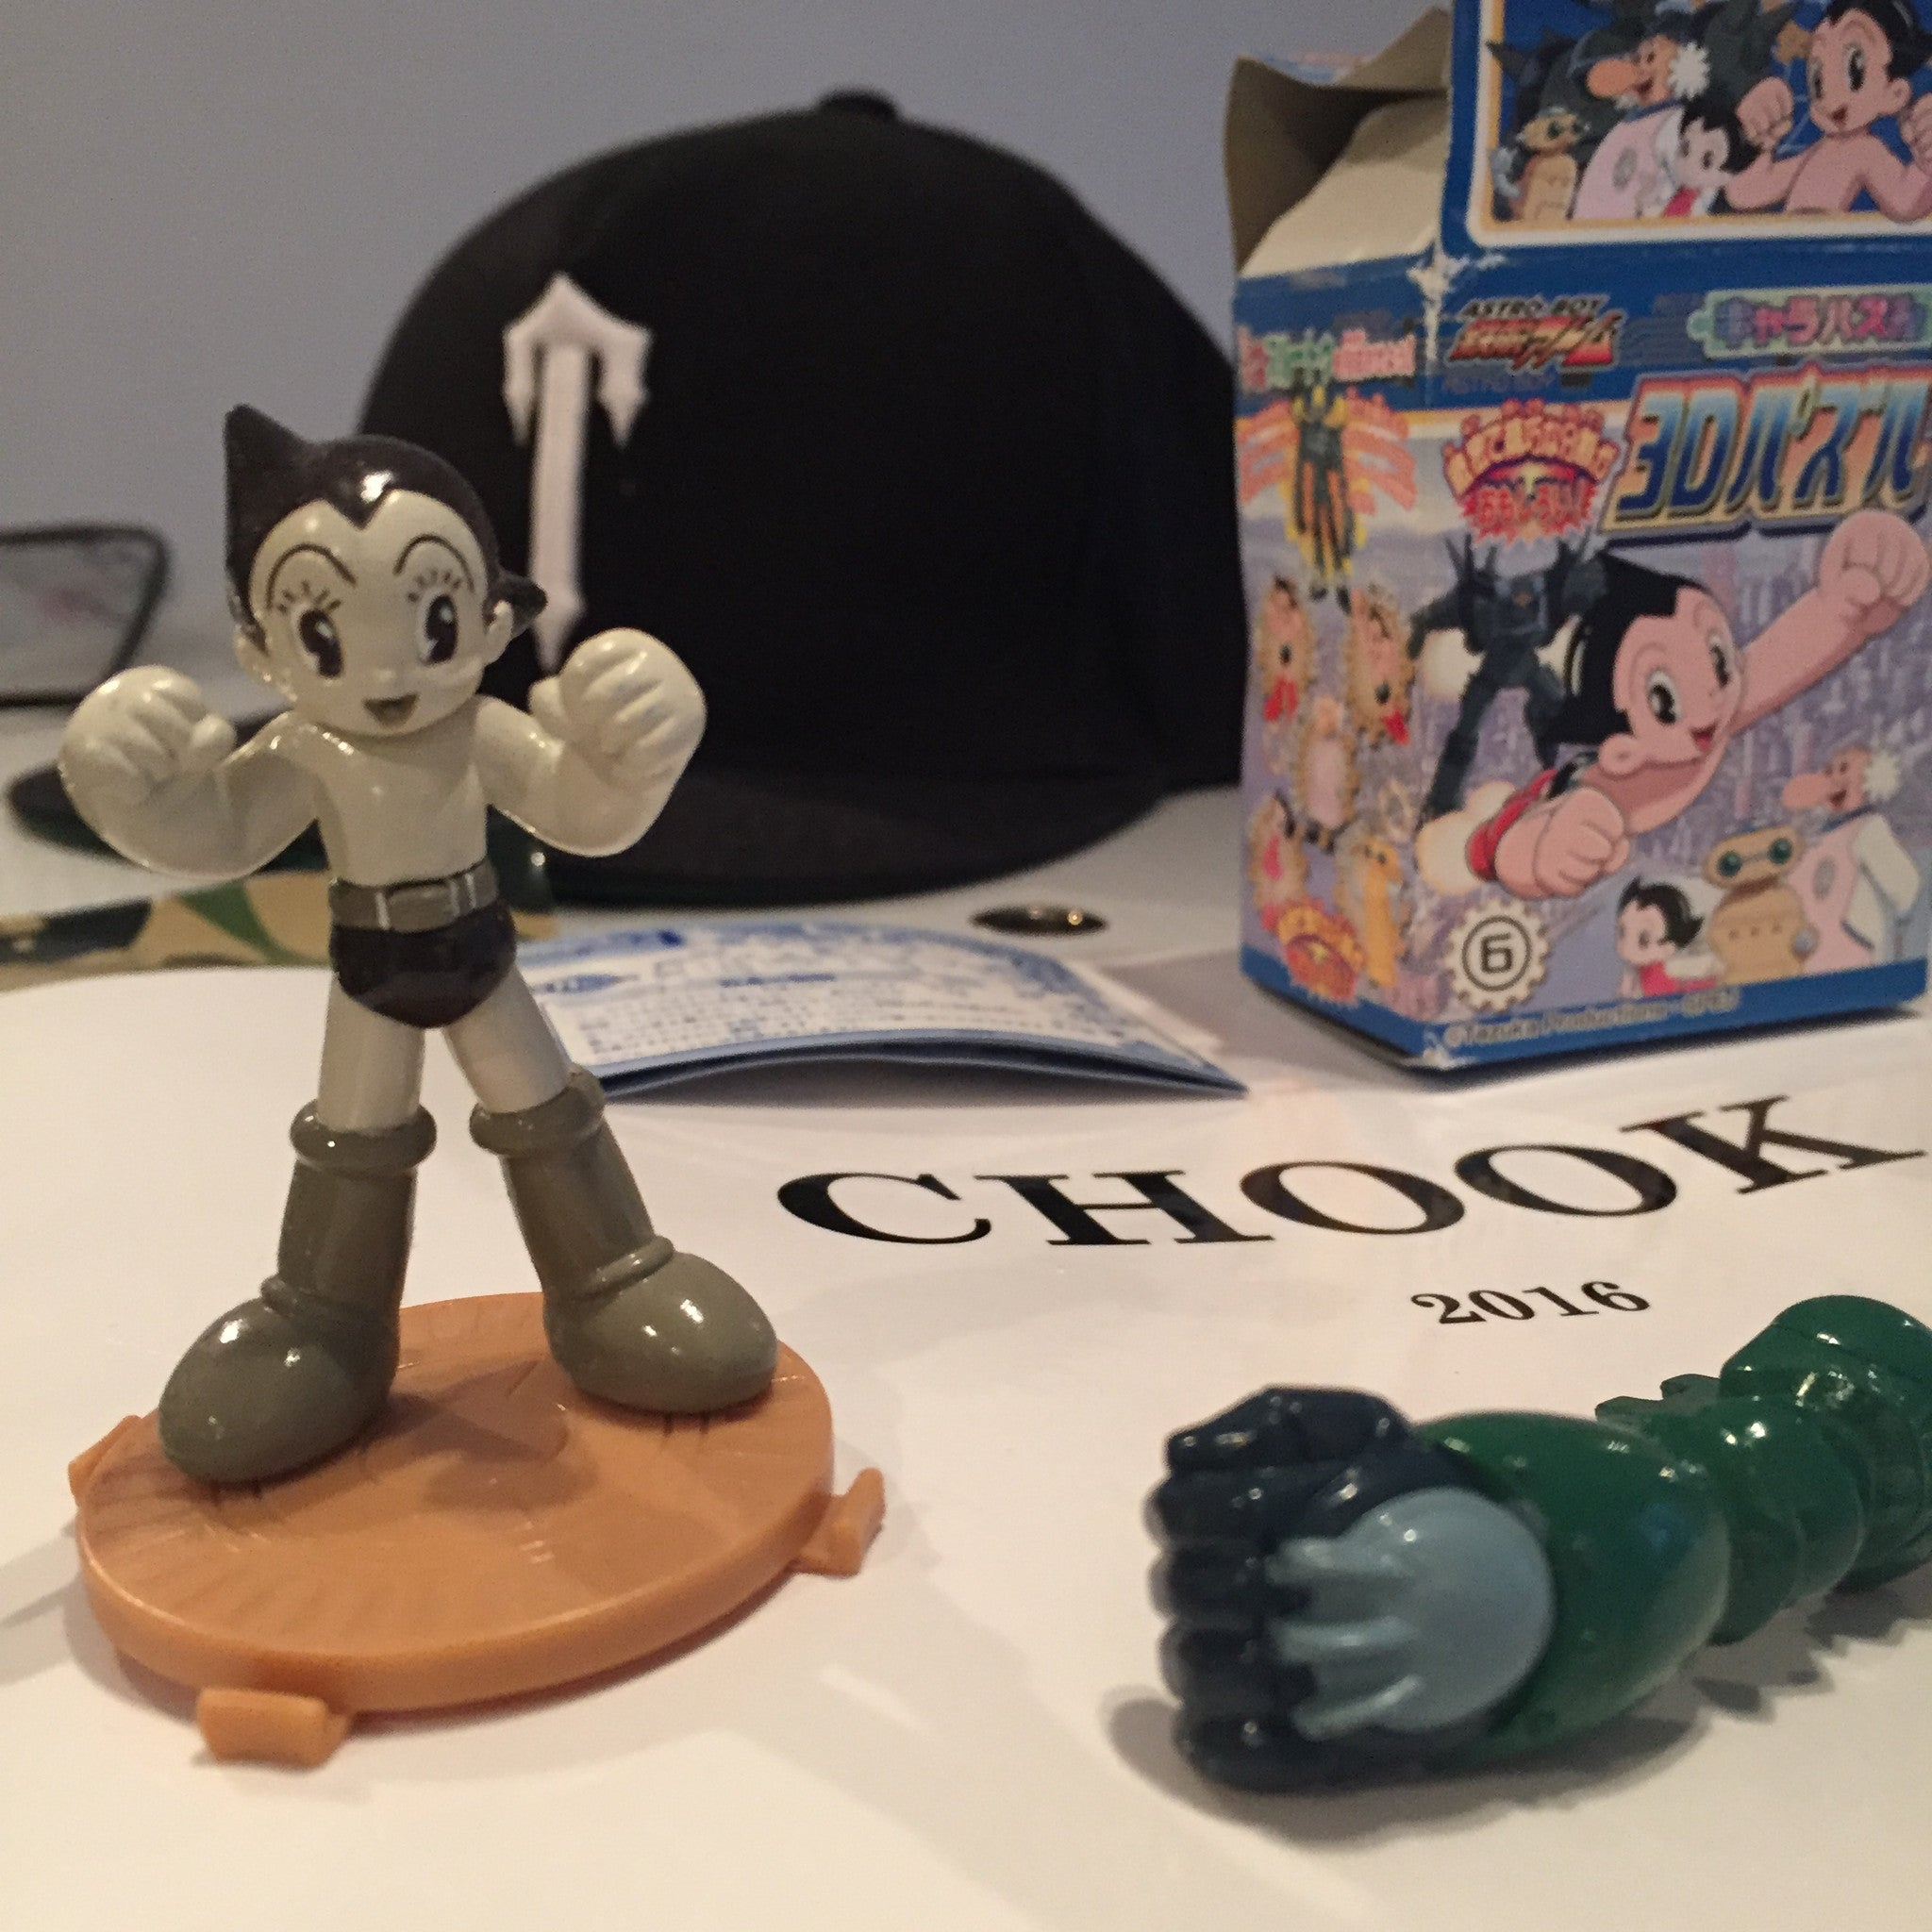 *new* Astro Boy Figurine - DS